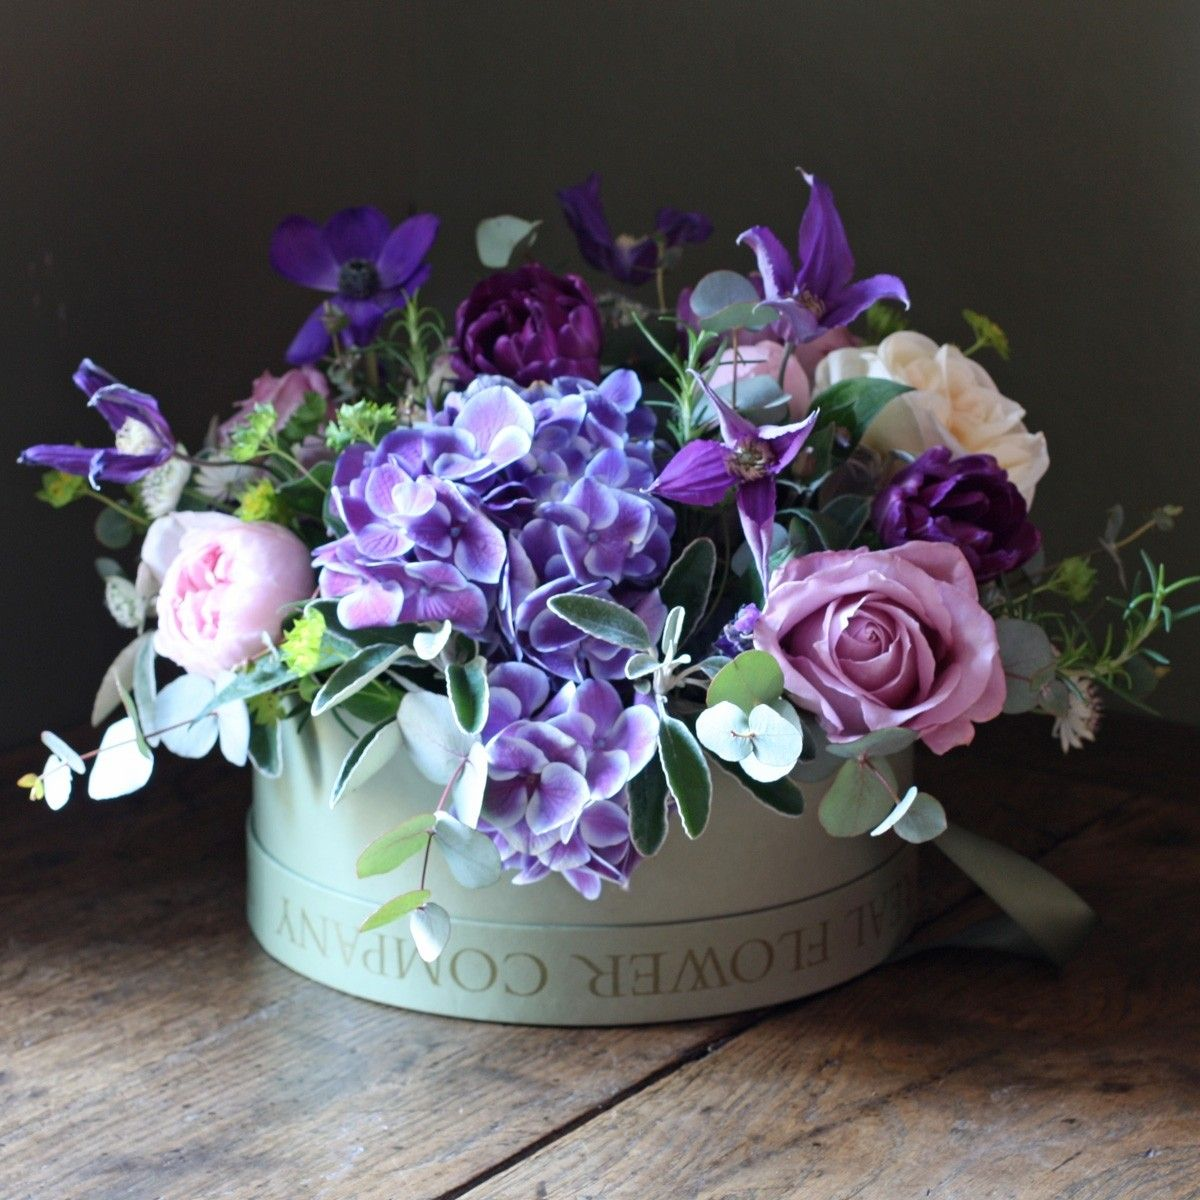 The Real Flower Company Scented Spring Rose & Anemone